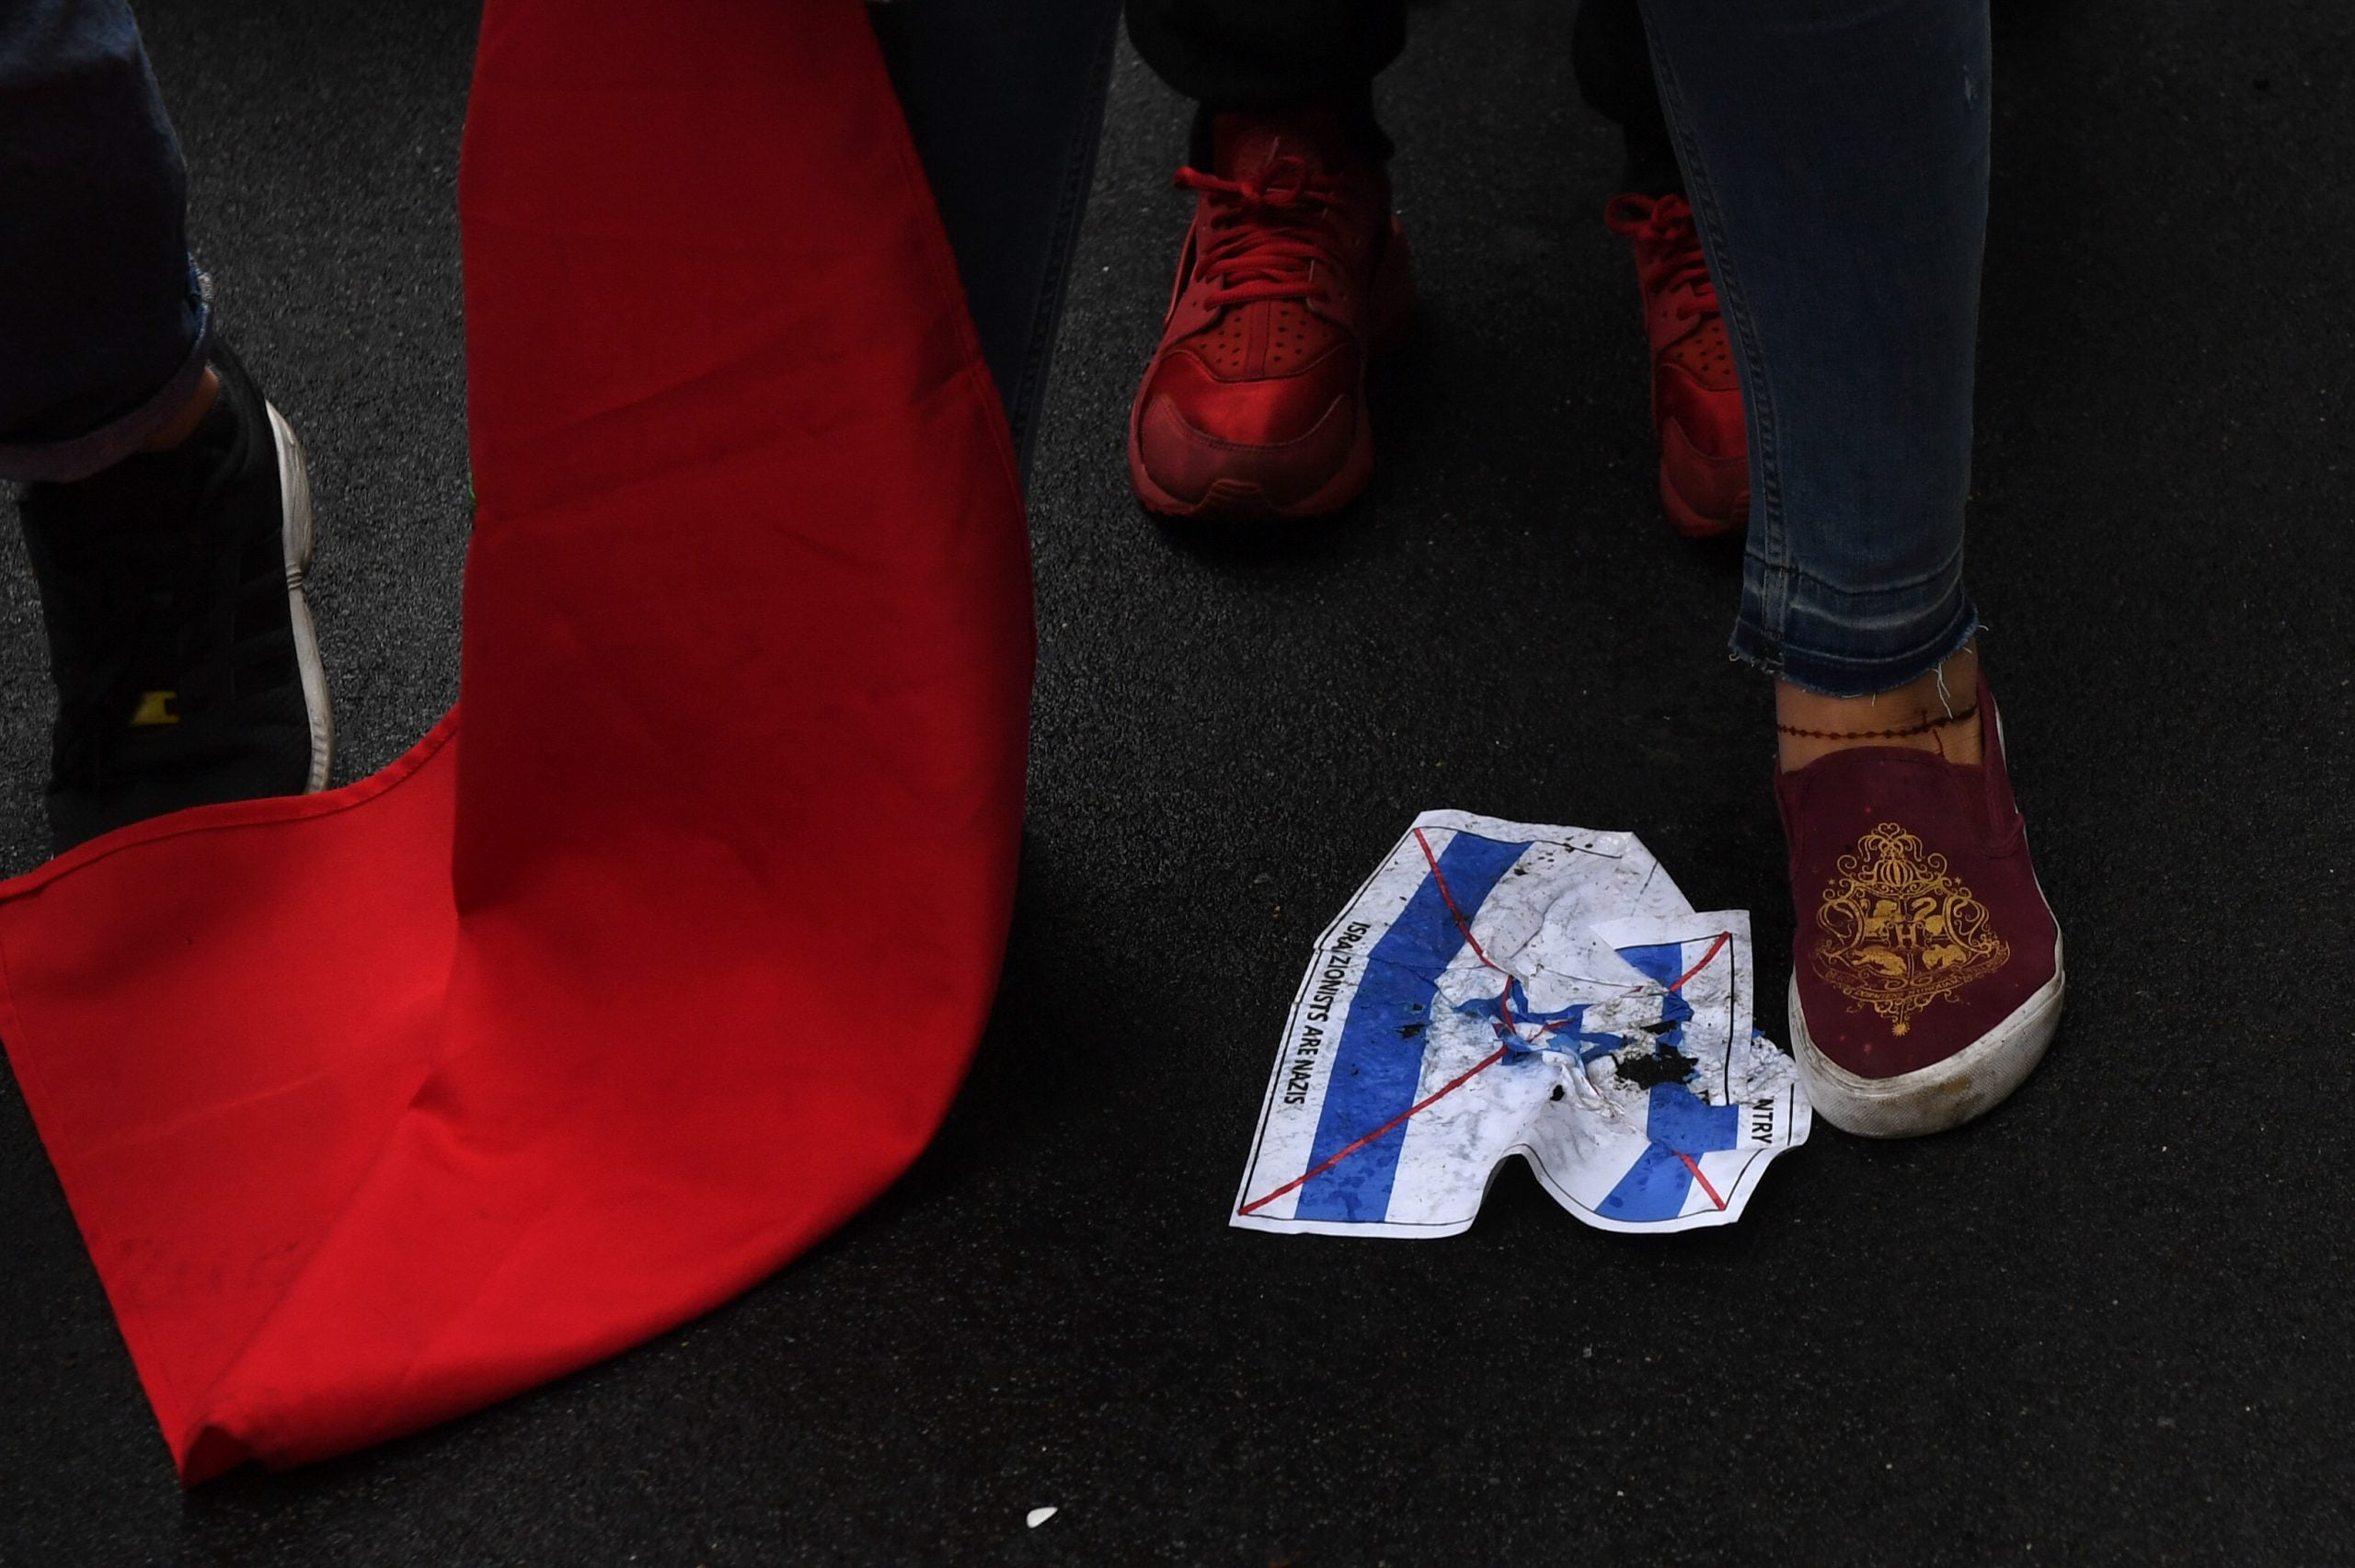 How the UK became a stage for hate during the Israel-Palestine conflict